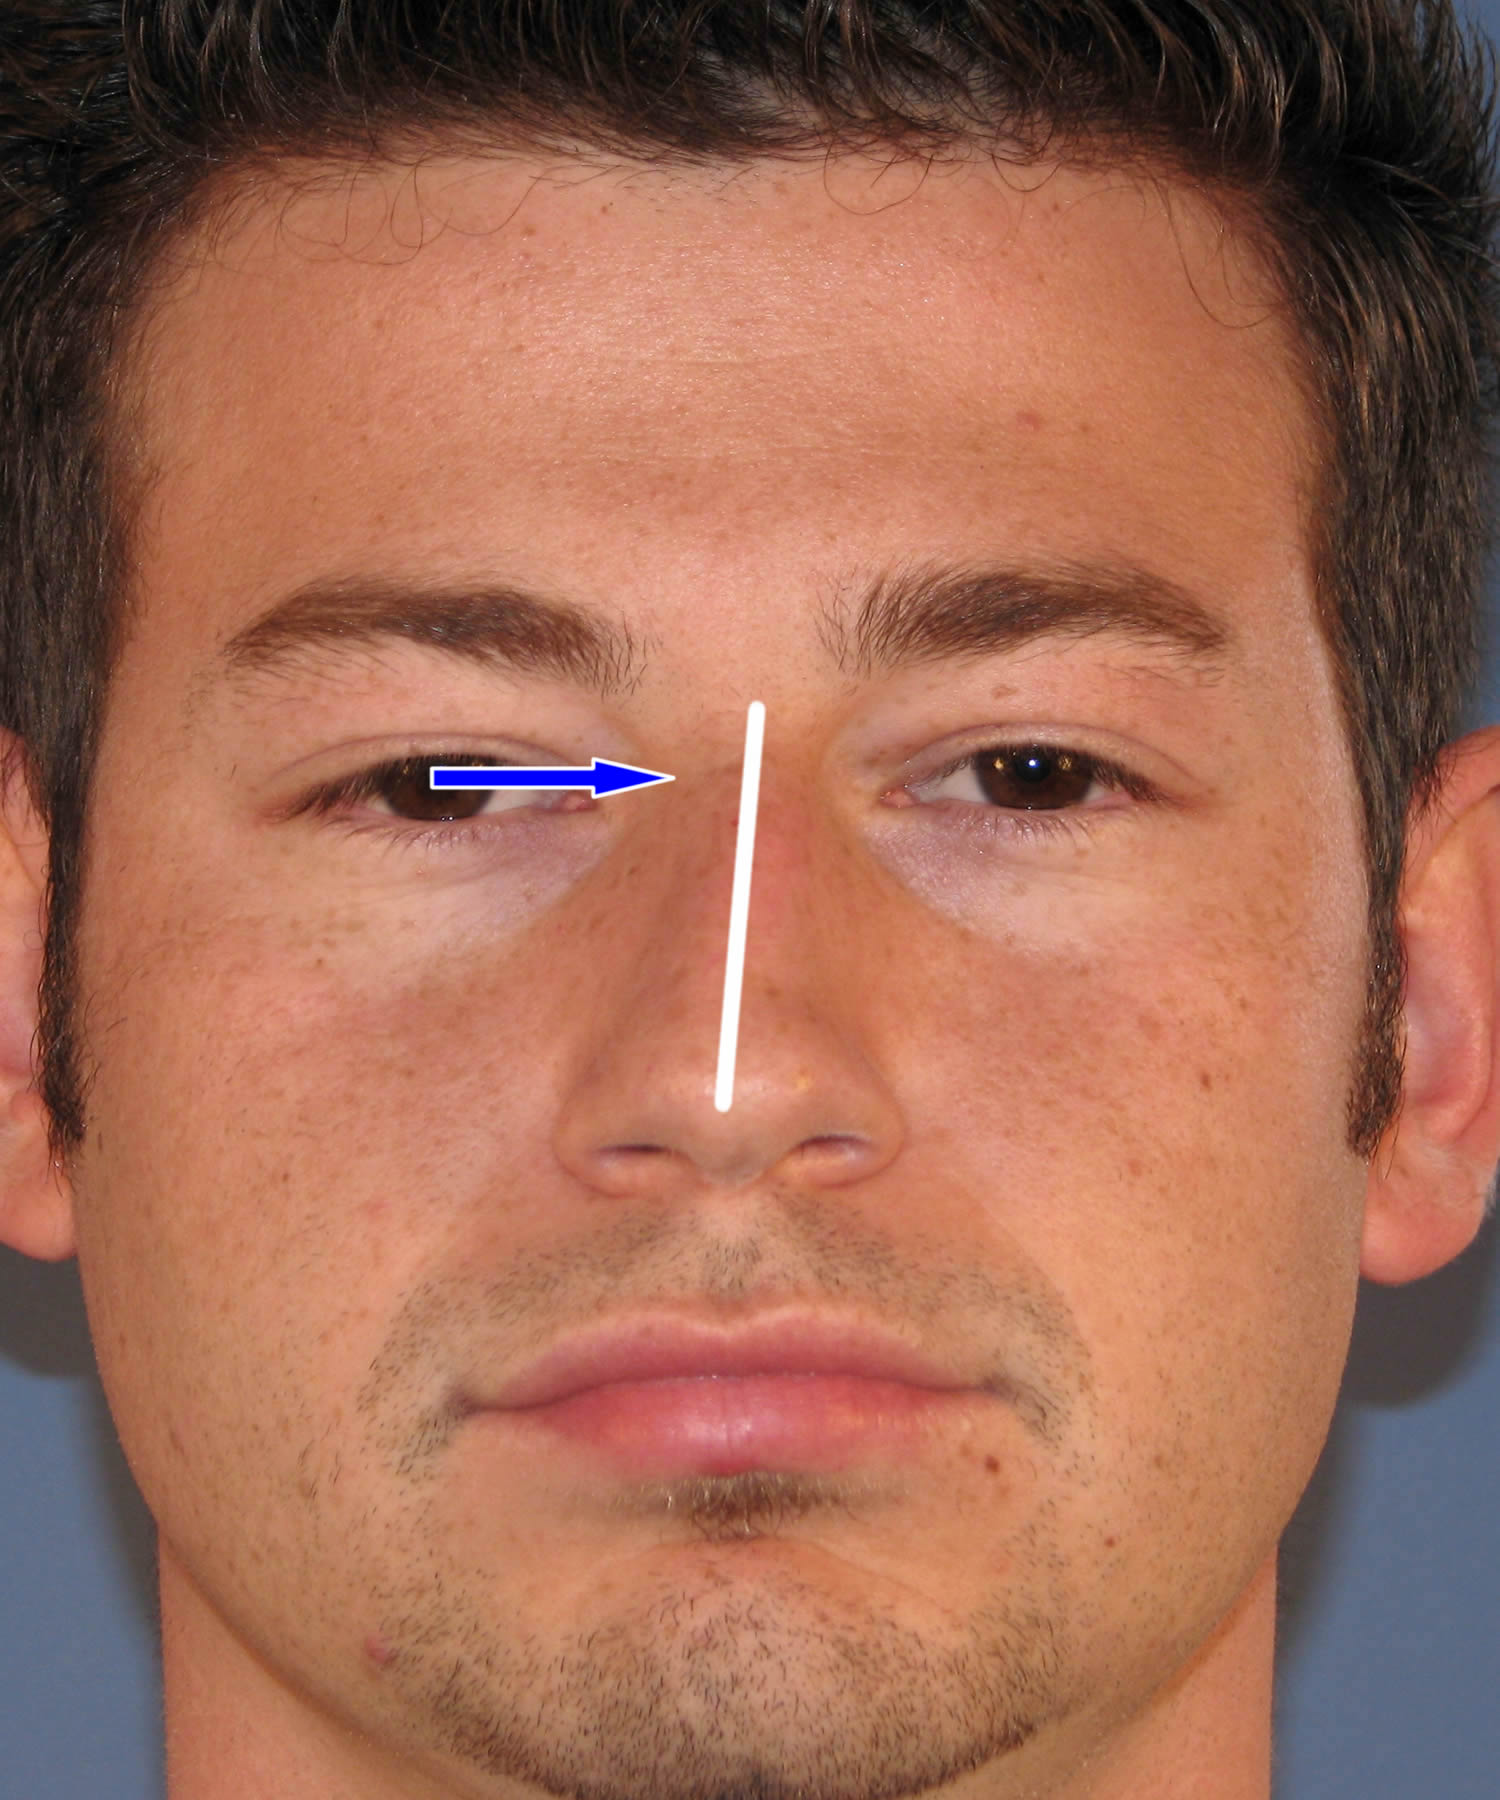 Rhinoplasty For Moderately Complex Asymmetry Of The Nose